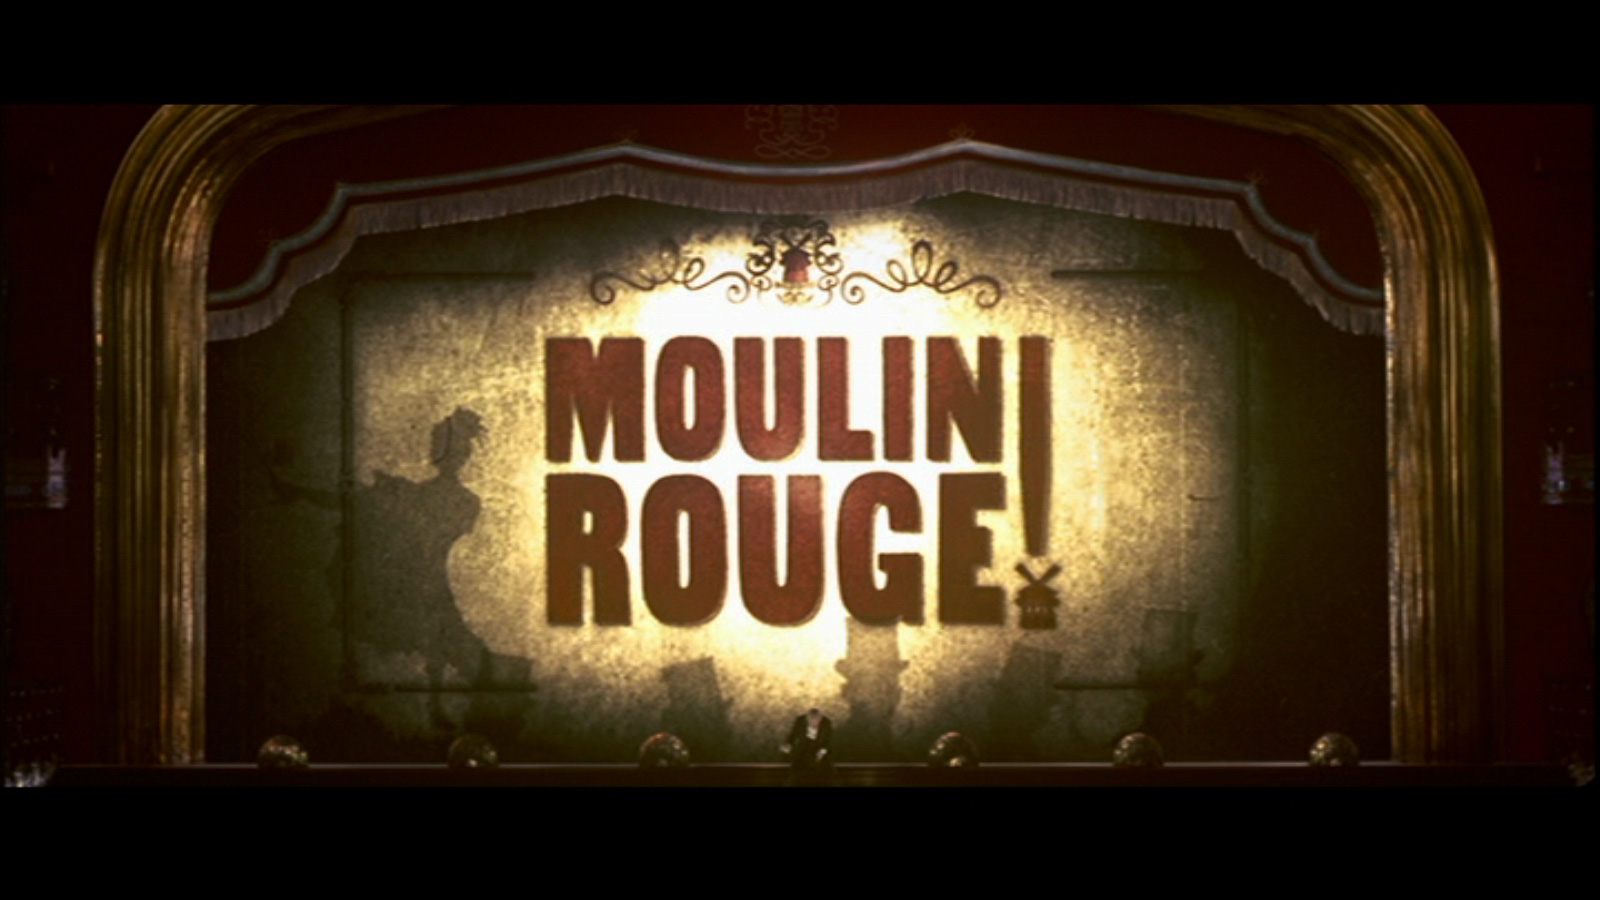 moulin-rouge-moulin-rouge-750352_1600_900.jpg